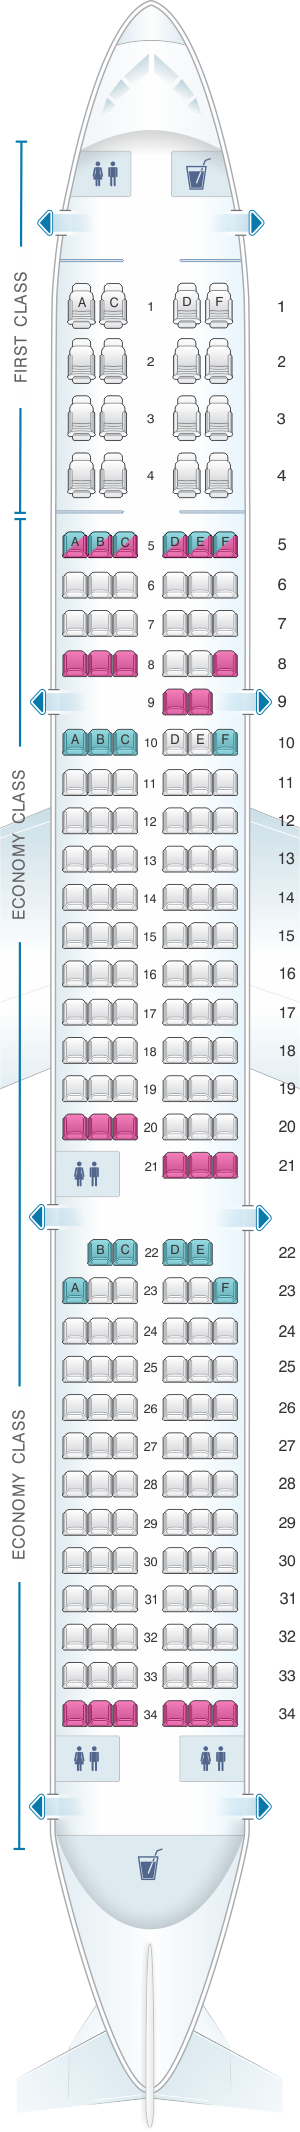 Seat map for American Airlines Airbus A321 187pax